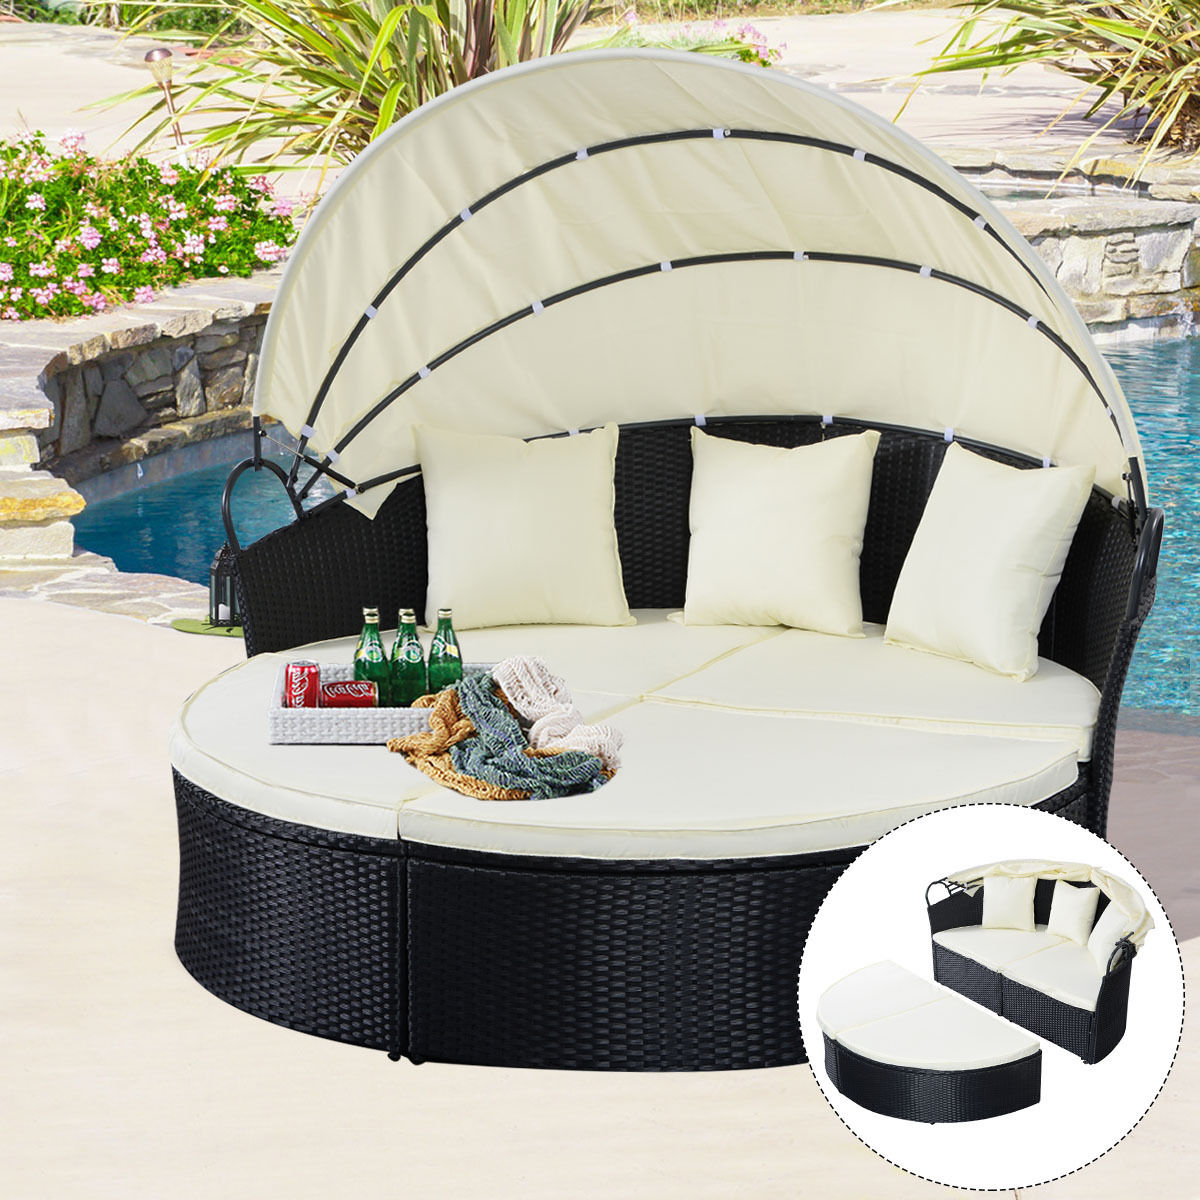 Costway Outdoor Patio Sofa Furniture Round Retractable Canopy Daybed Throughout Preferred Circle Sofa Chairs (Gallery 13 of 20)